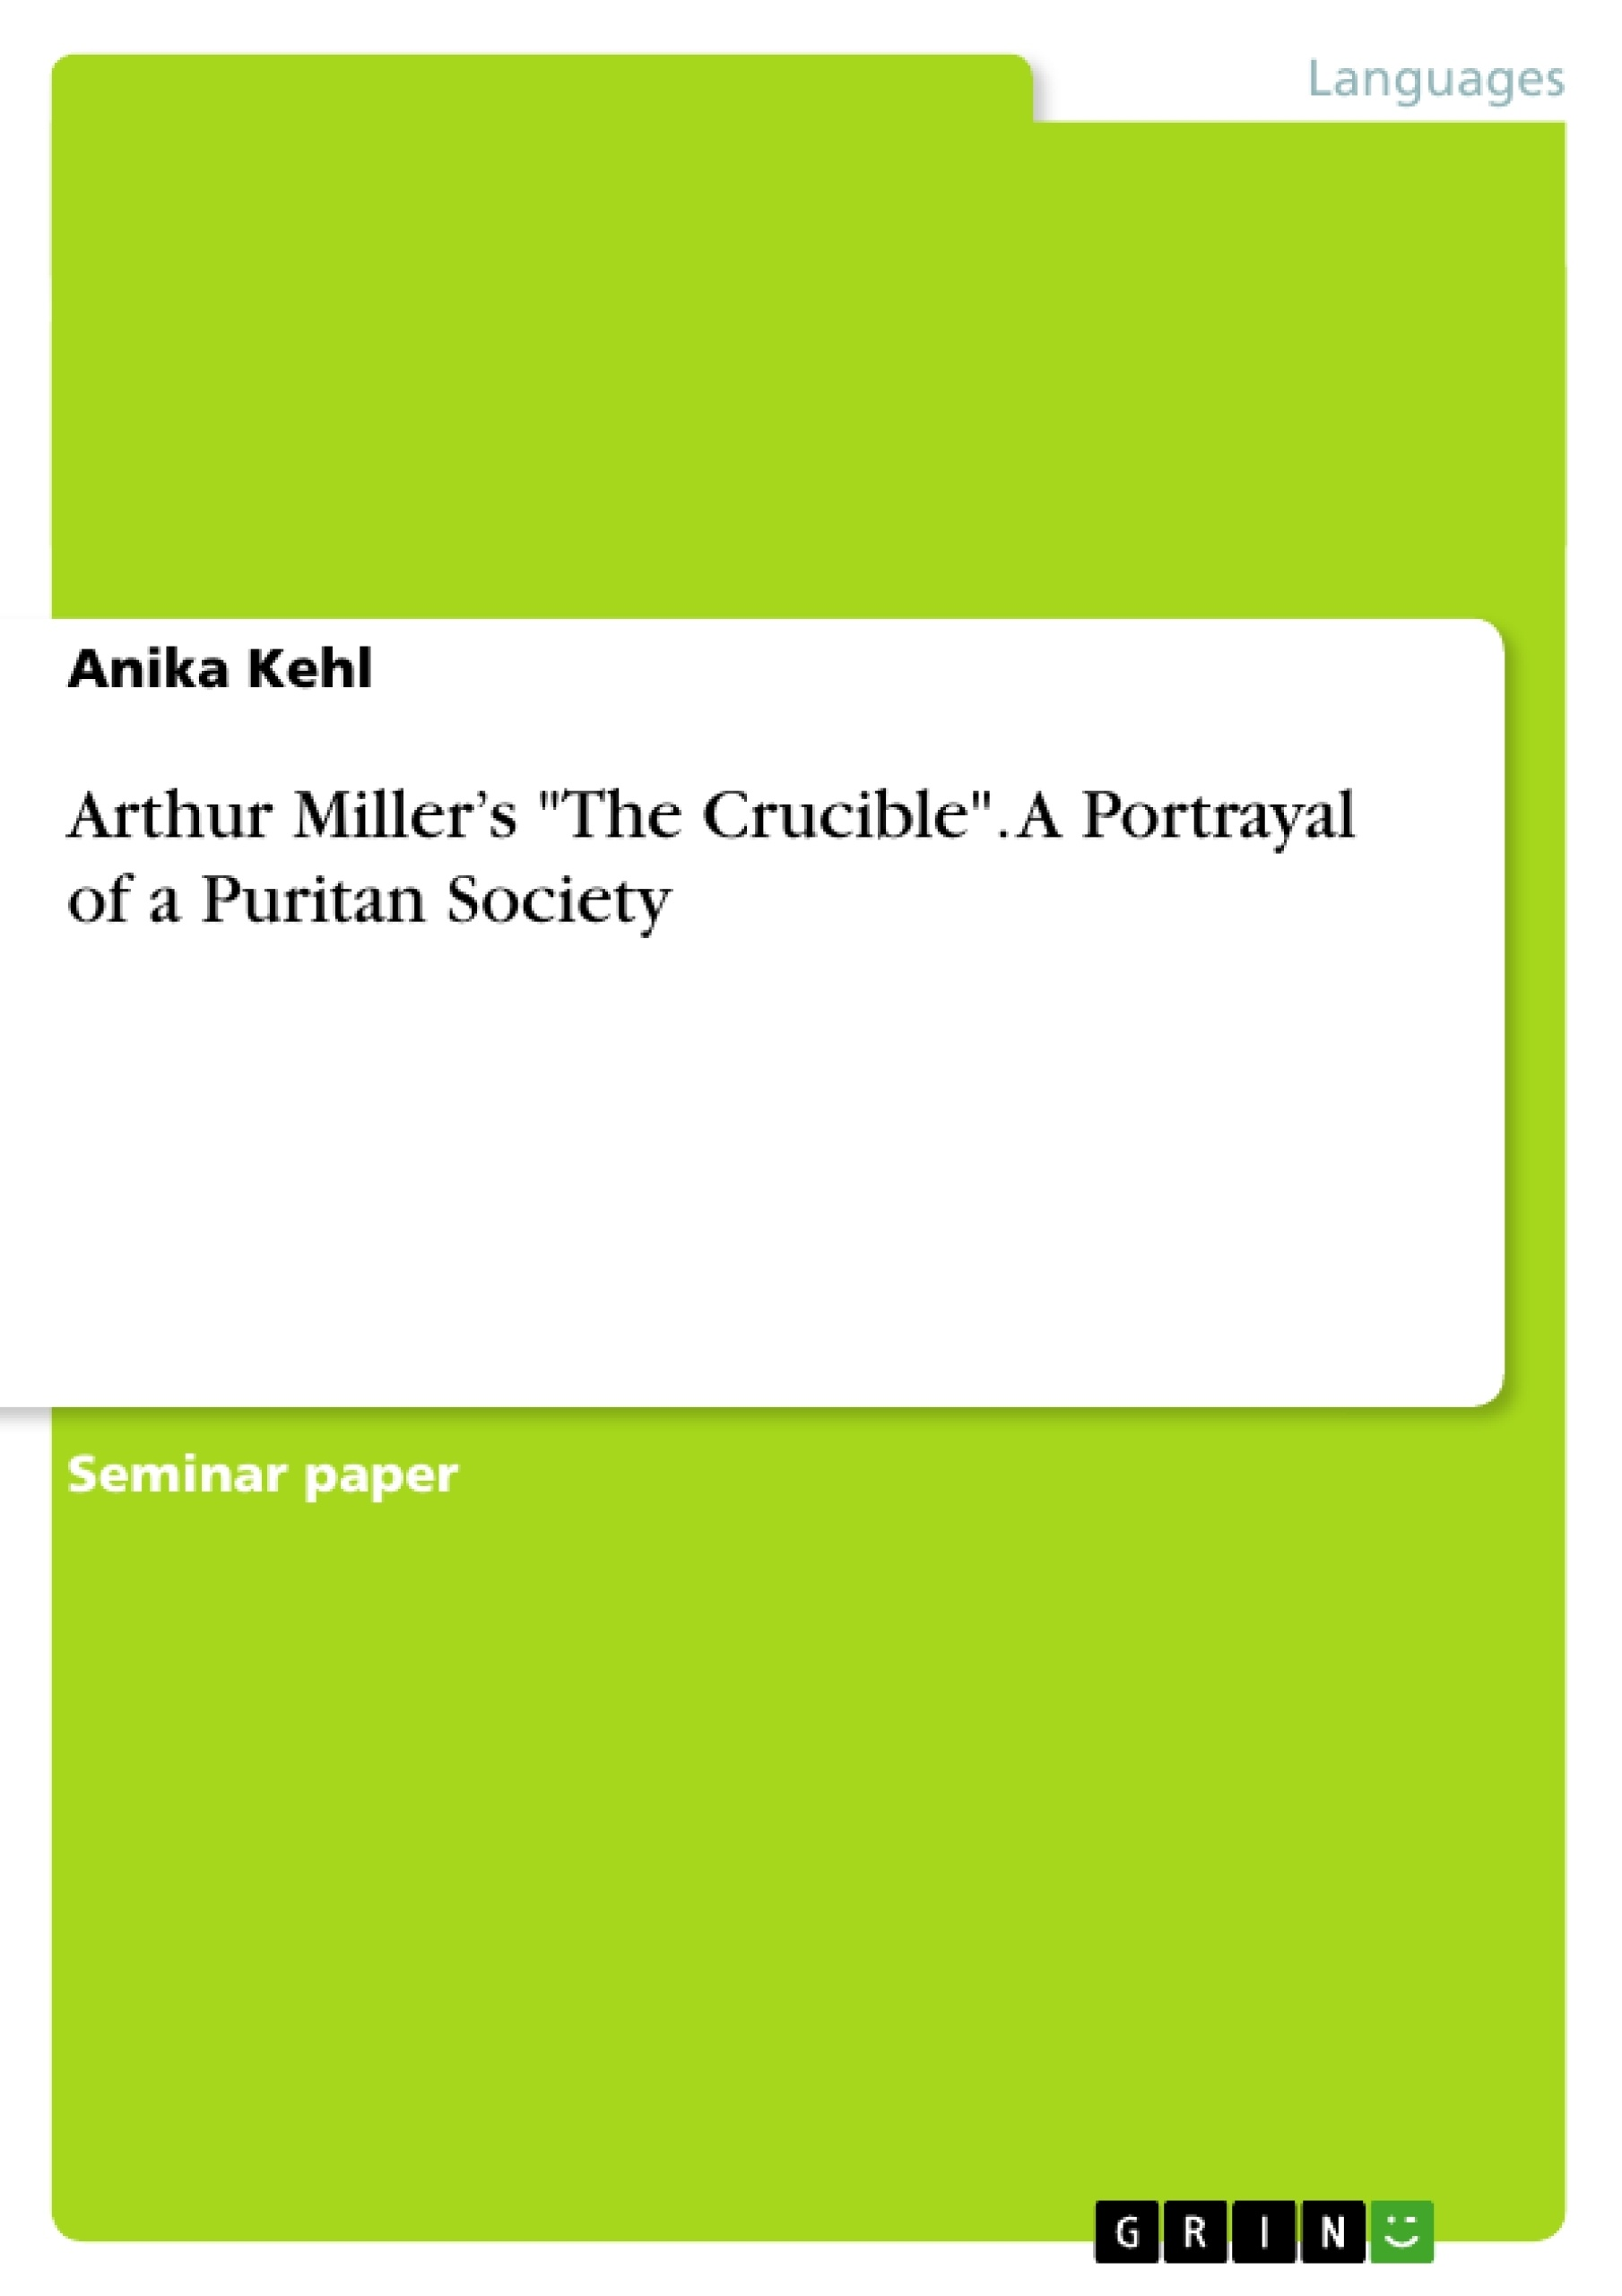 arthur miller s the crucible a portrayal of a puritan society arthur miller s the crucible a portrayal of a puritan society publish your master s thesis bachelor s thesis essay or term paper